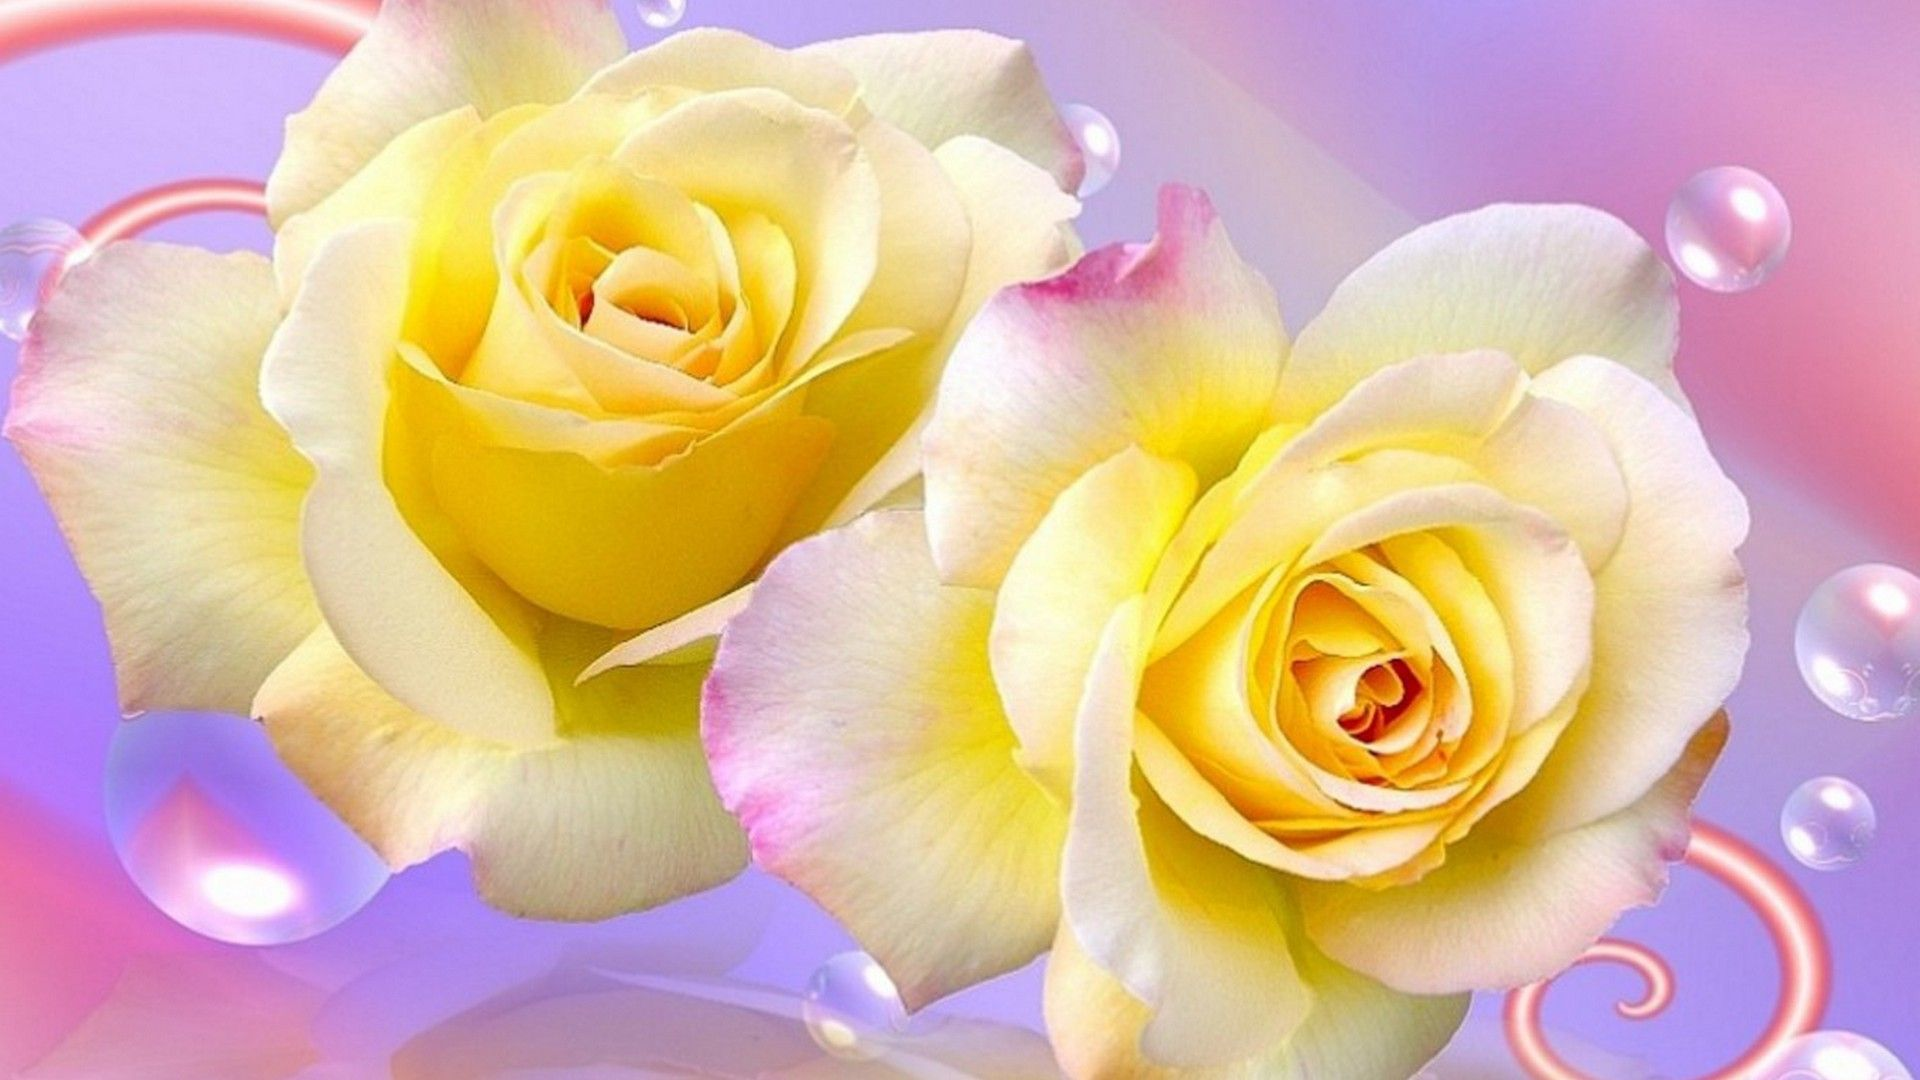 Computer Wallpapers Yellow Flower Best Wallpaper Hd Rose Flower Wallpaper Yellow Rose Flower Yellow Roses